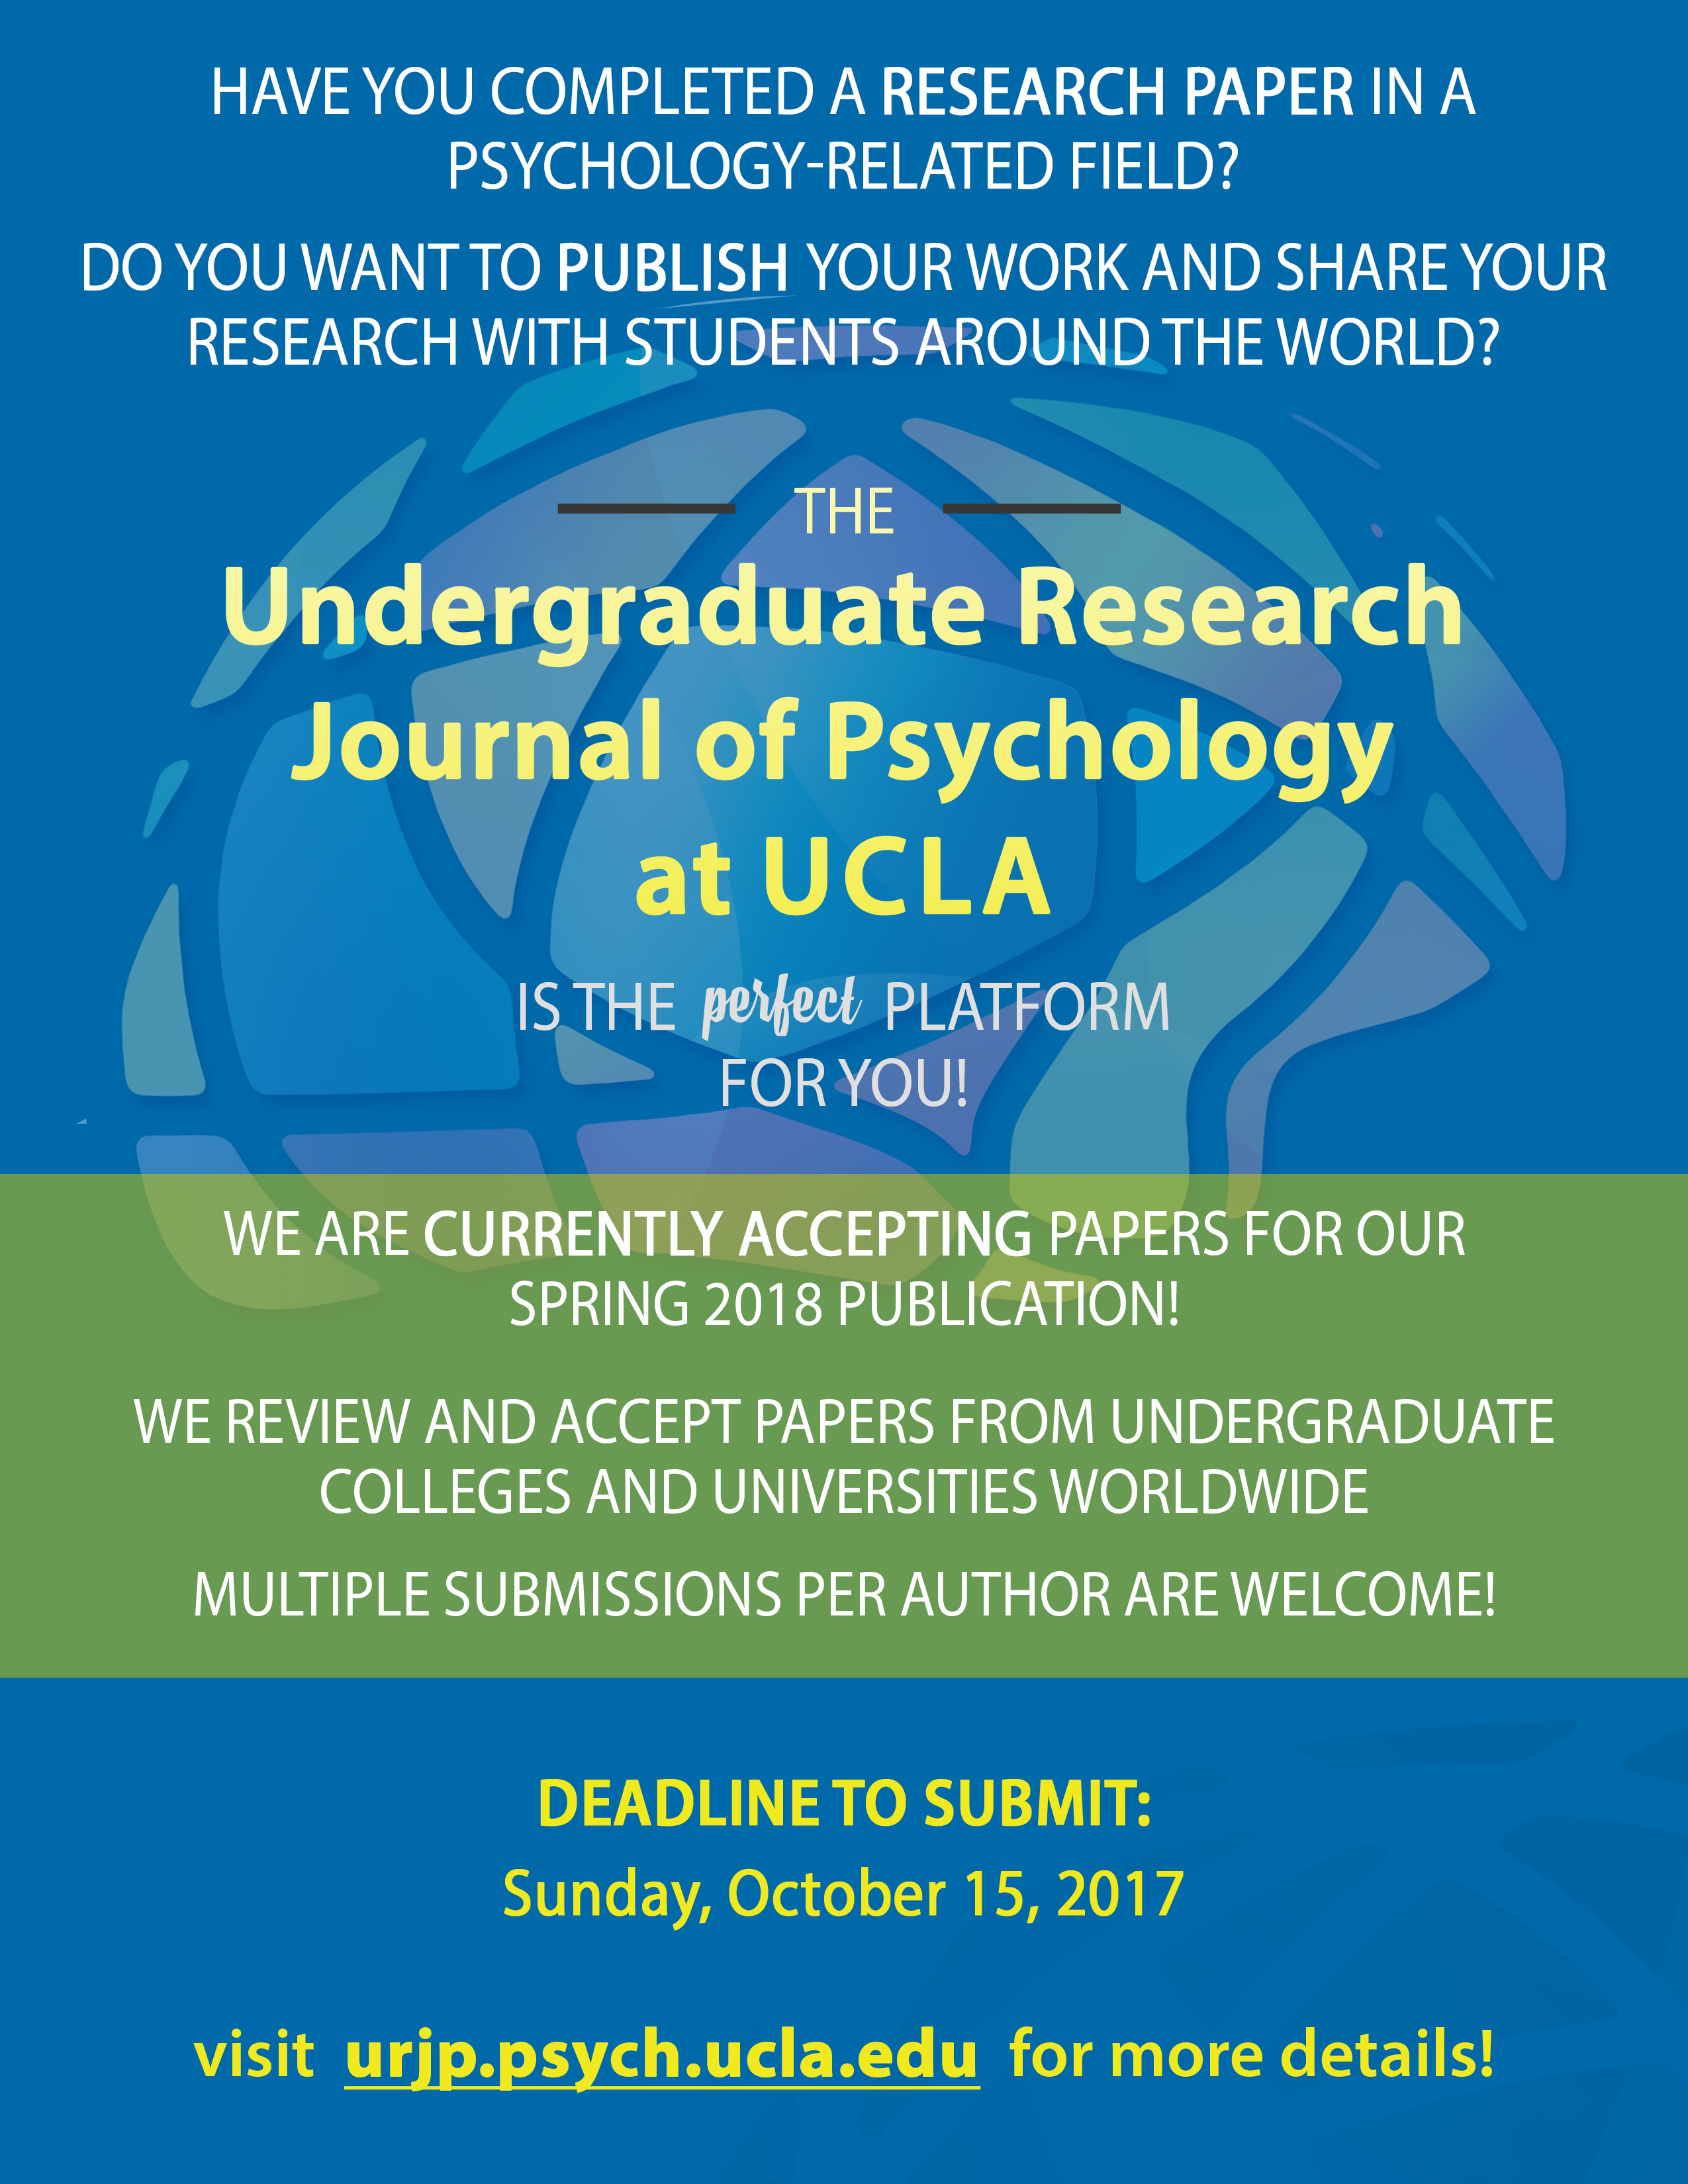 004 Submissions Open Research Paper How To Publish As An Marvelous A Undergraduate In India Full